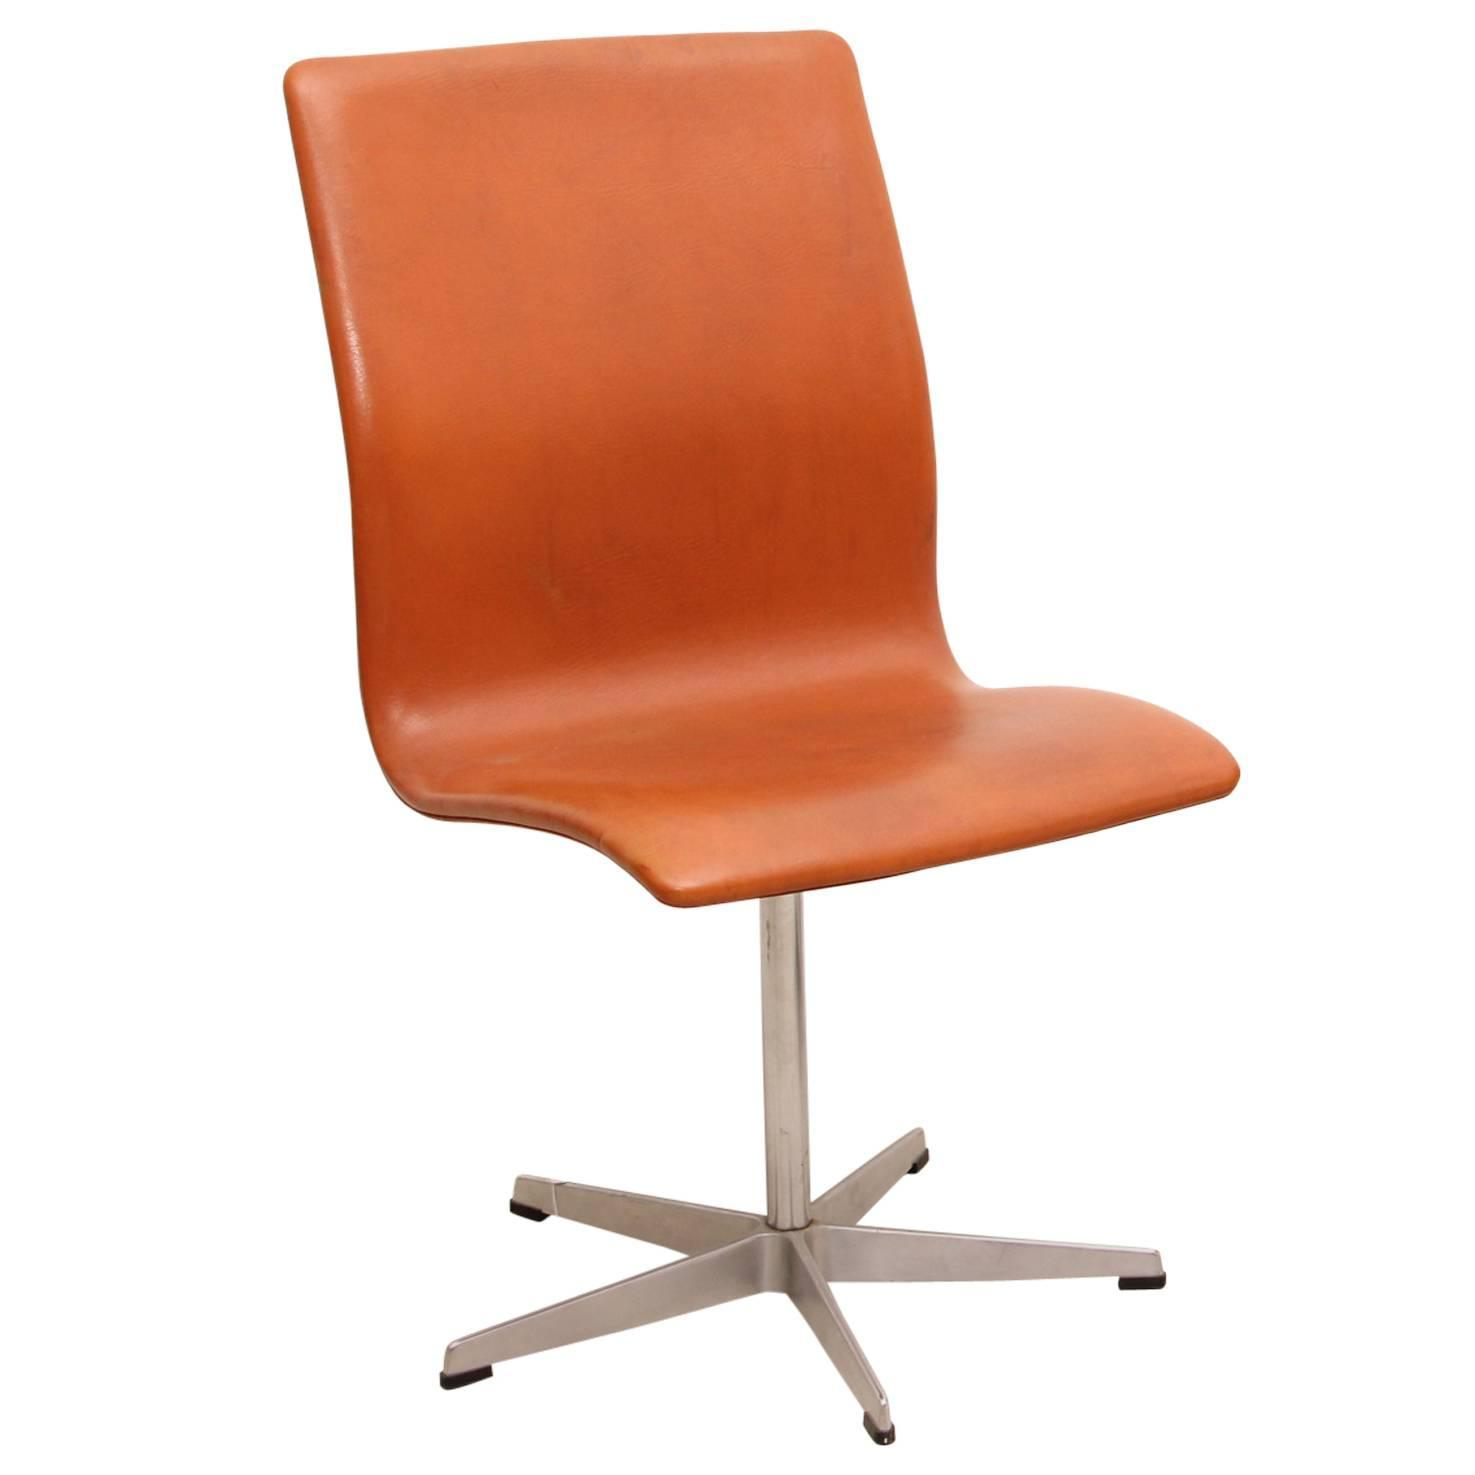 Oxford Chair by Arne Jacobsen Produced by Fritz Hansen 1963 at